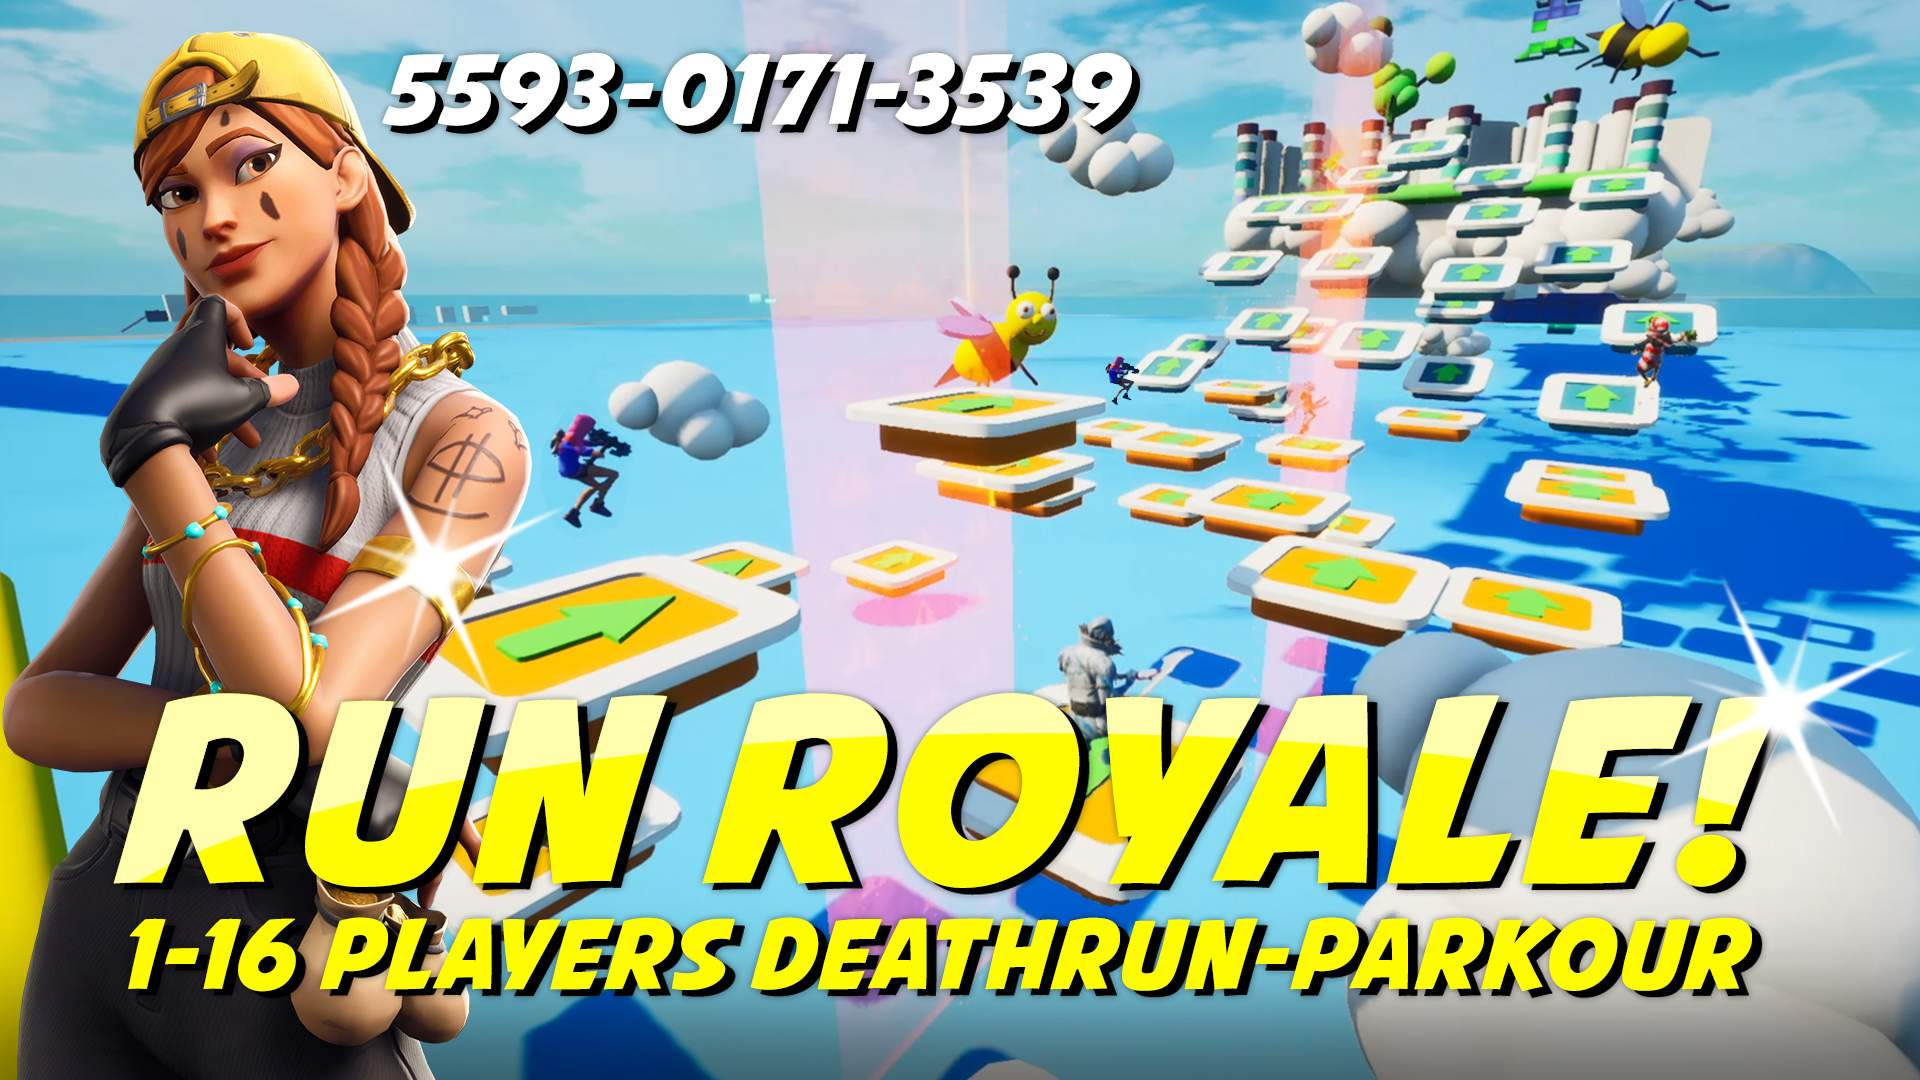 RUN ROYALE (1-16 PLAYERS)